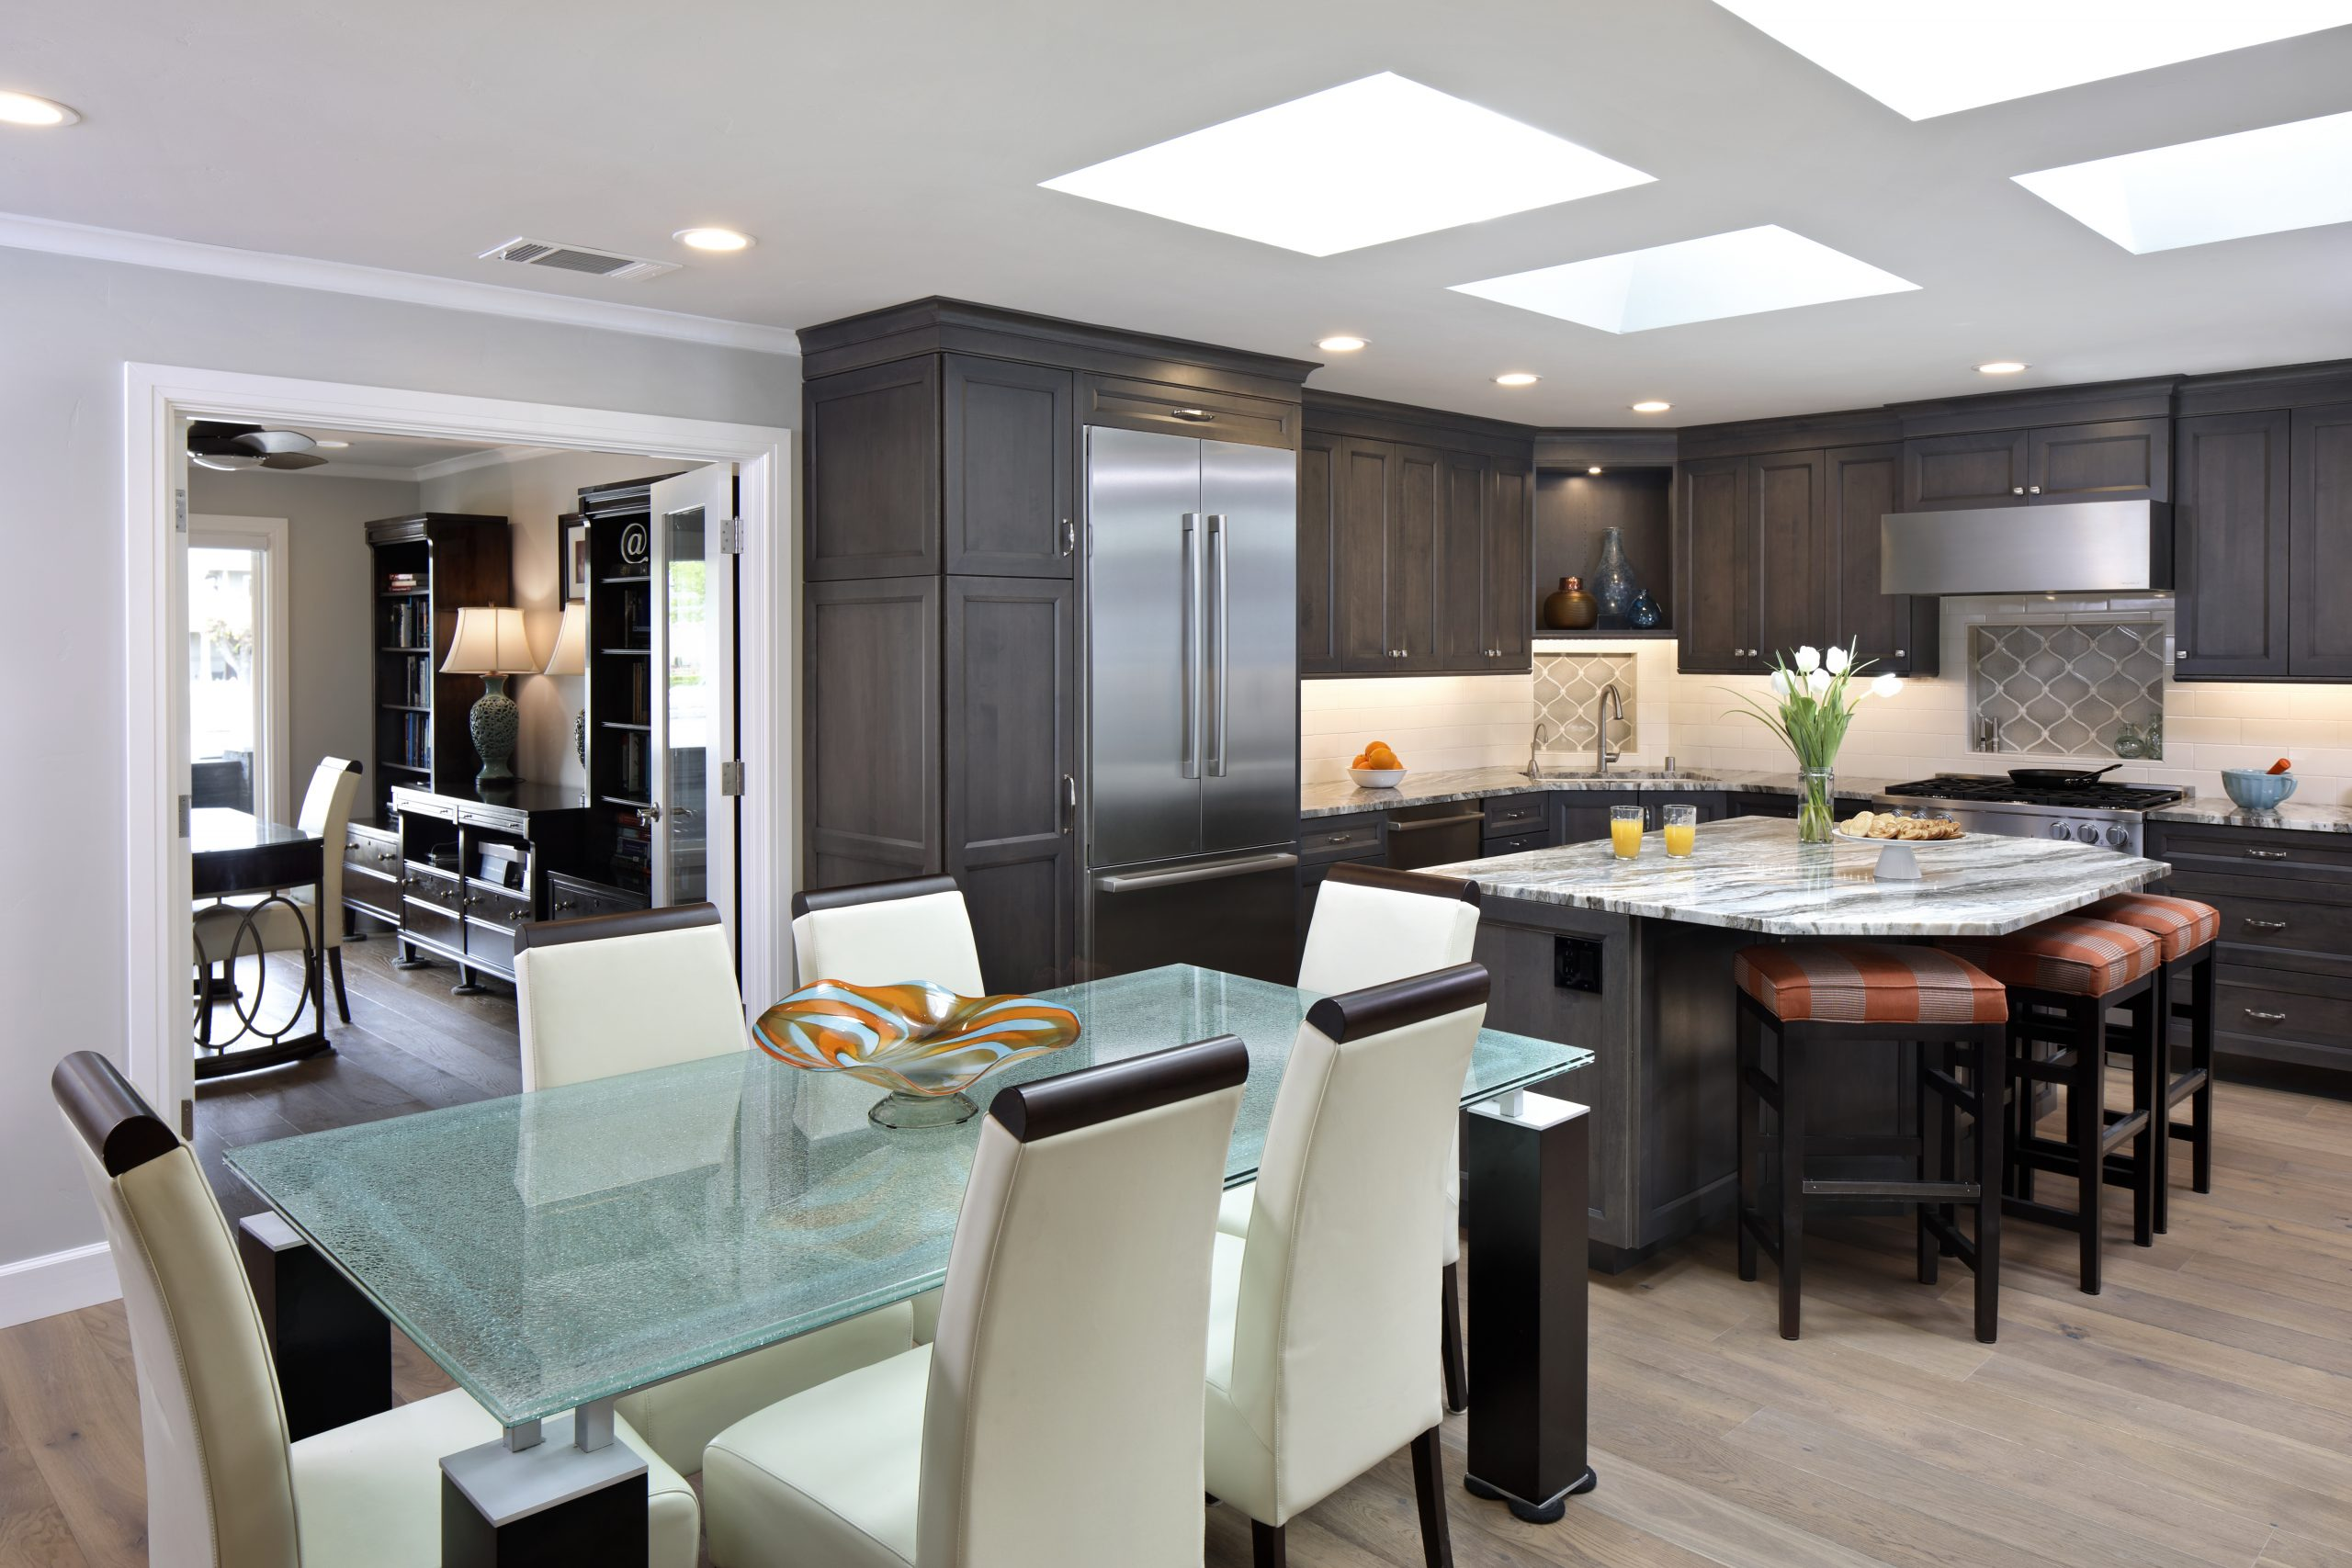 A kitchen and living room combination with a large granite island and glass table.